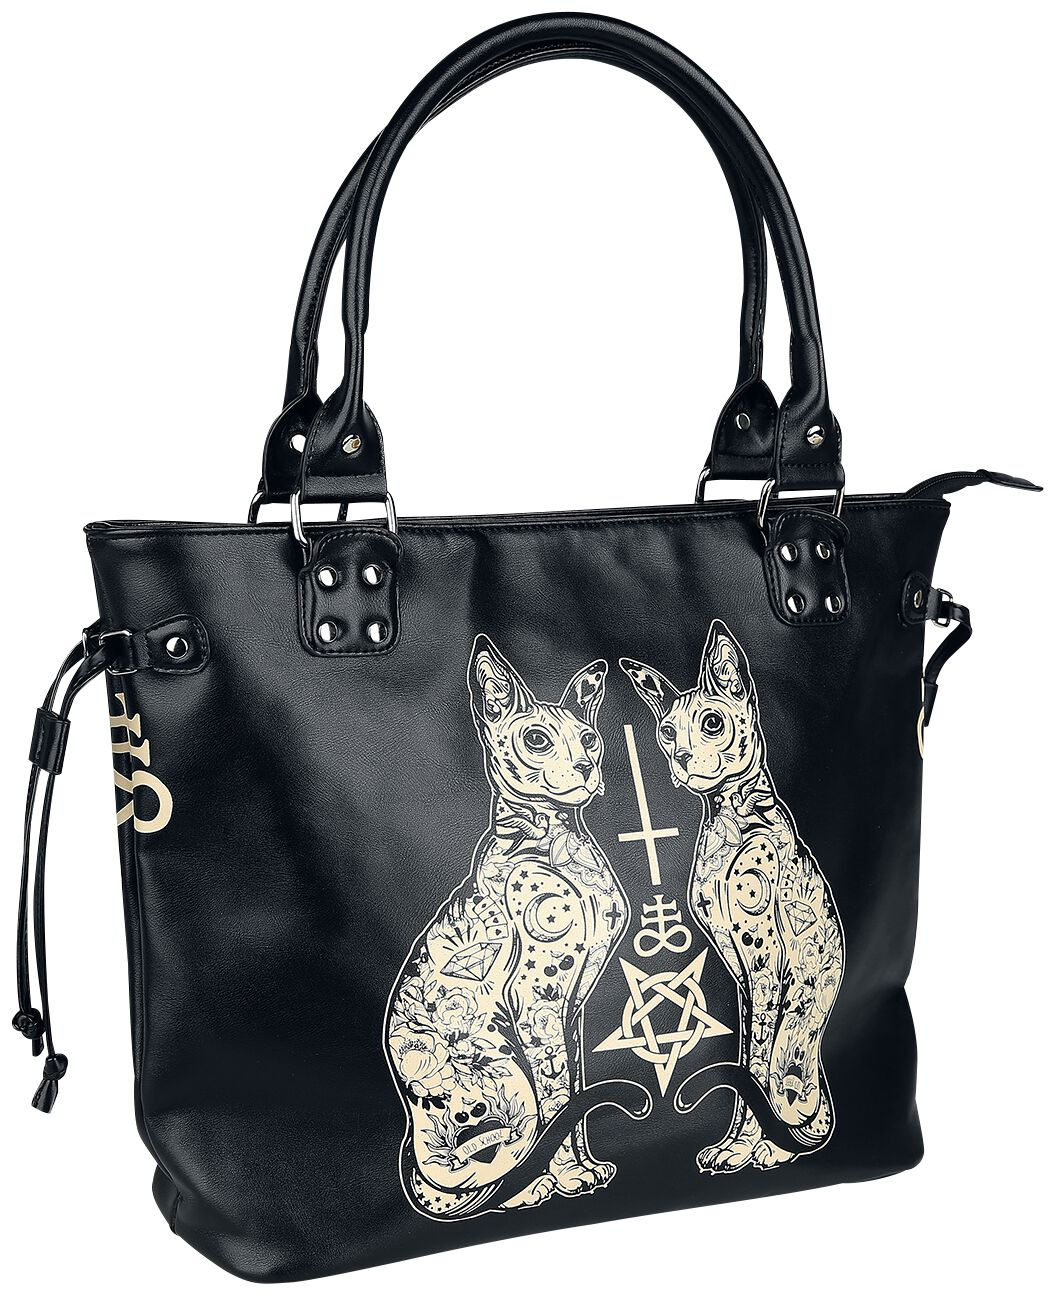 Image of   Banned Esoteric Cat Bag Håndtaske sort-hvid